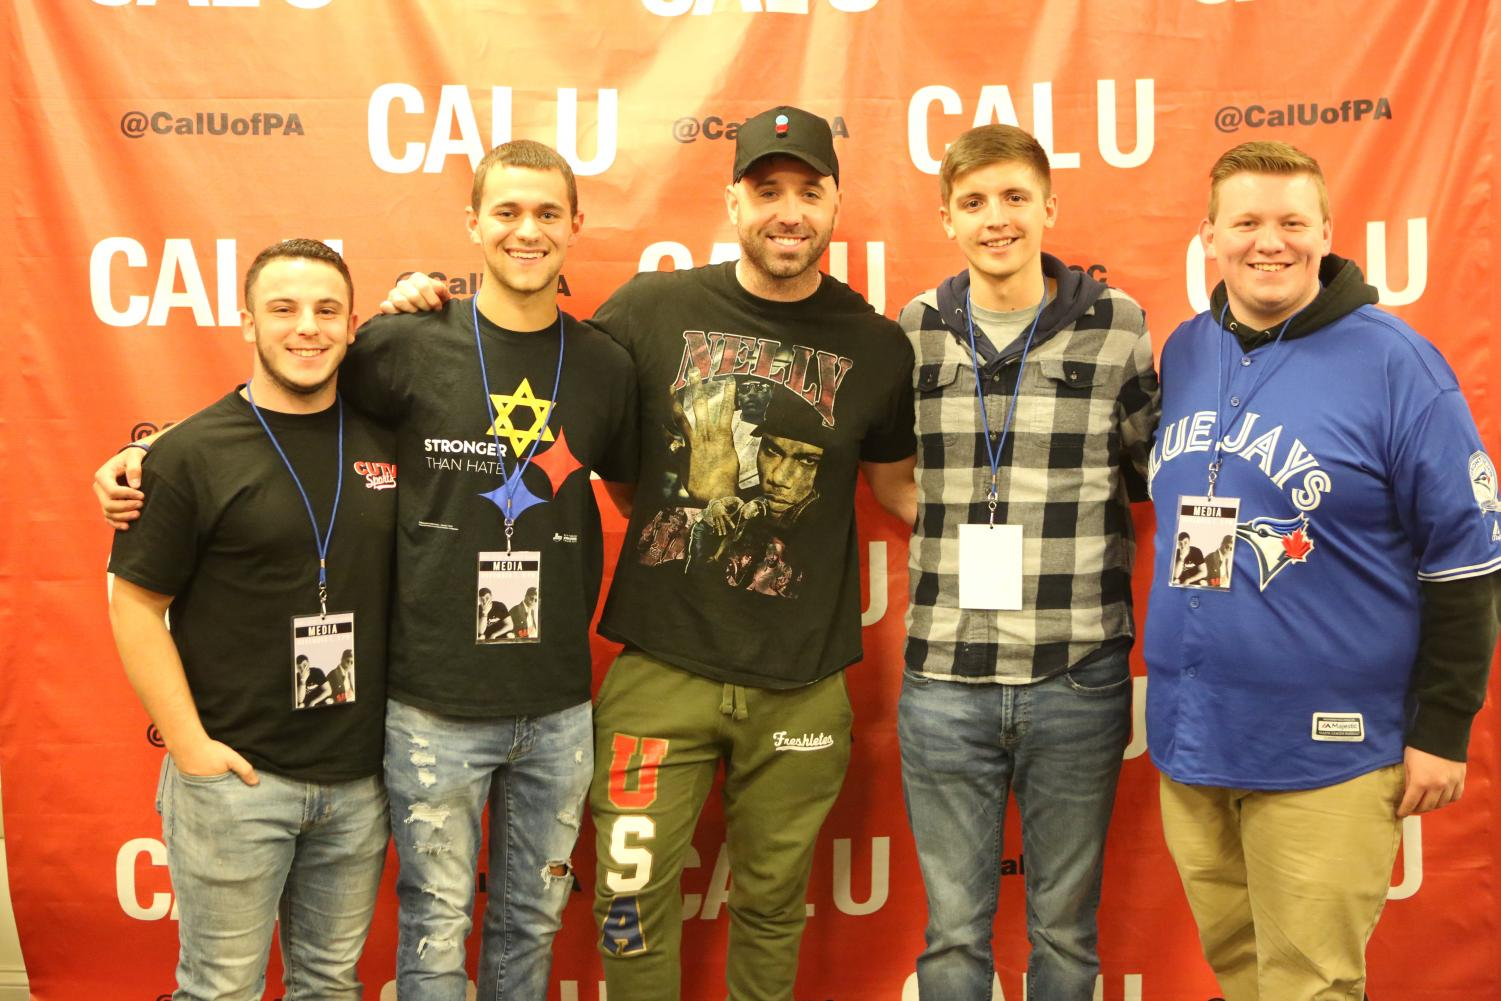 CUTV and Cal Times media staff with Mike Stud post-show.